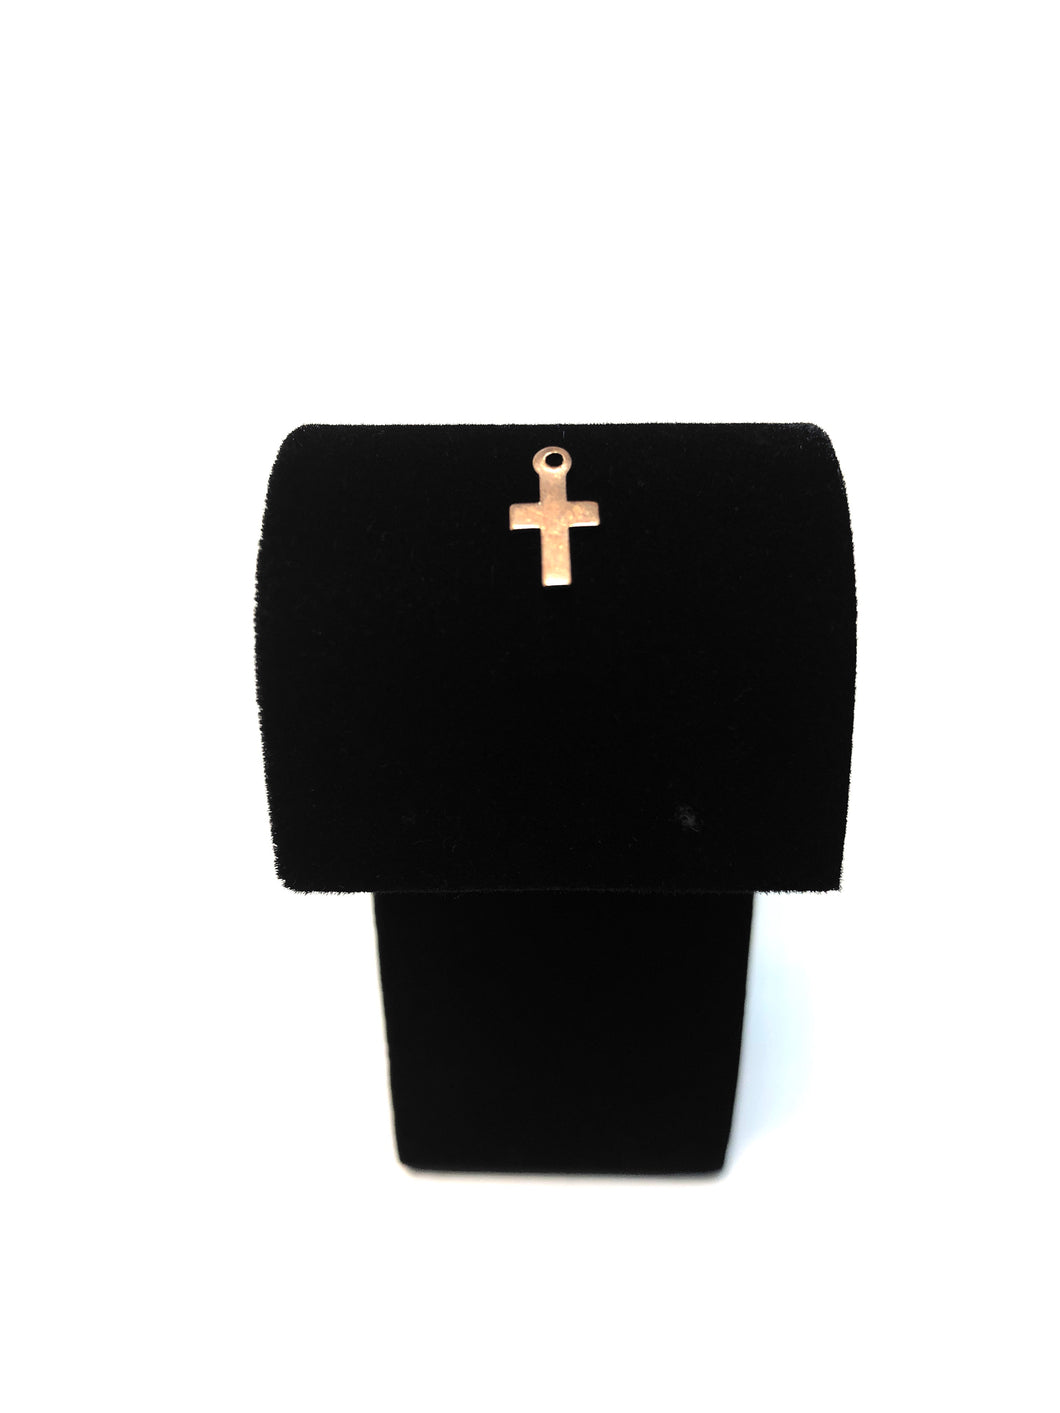 Small 14kGF Cross Charm